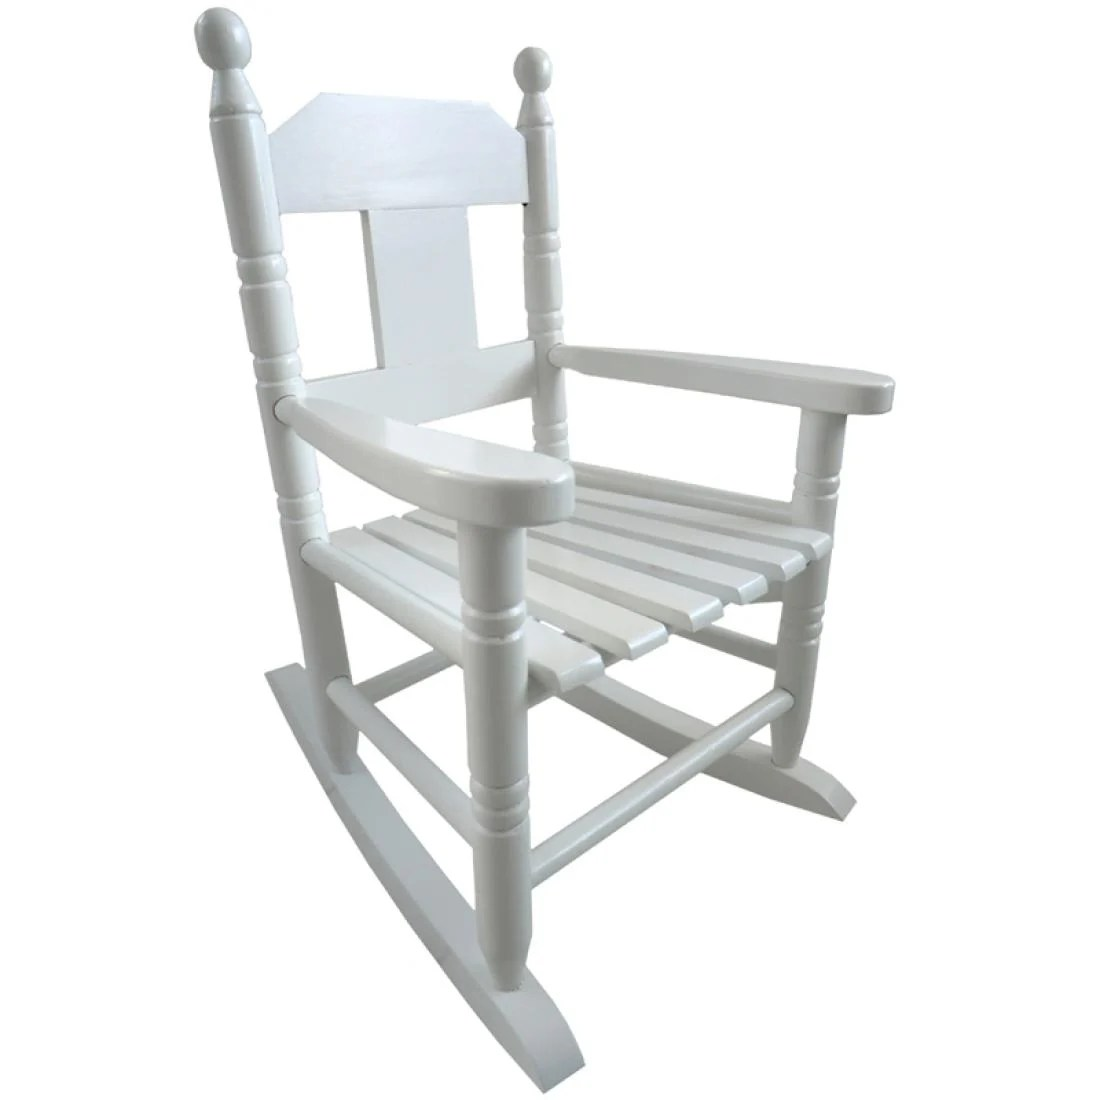 White Wooden Rocking Chairs For Sale White Childs Rocking Chair Childrens Rocking Chair Kids